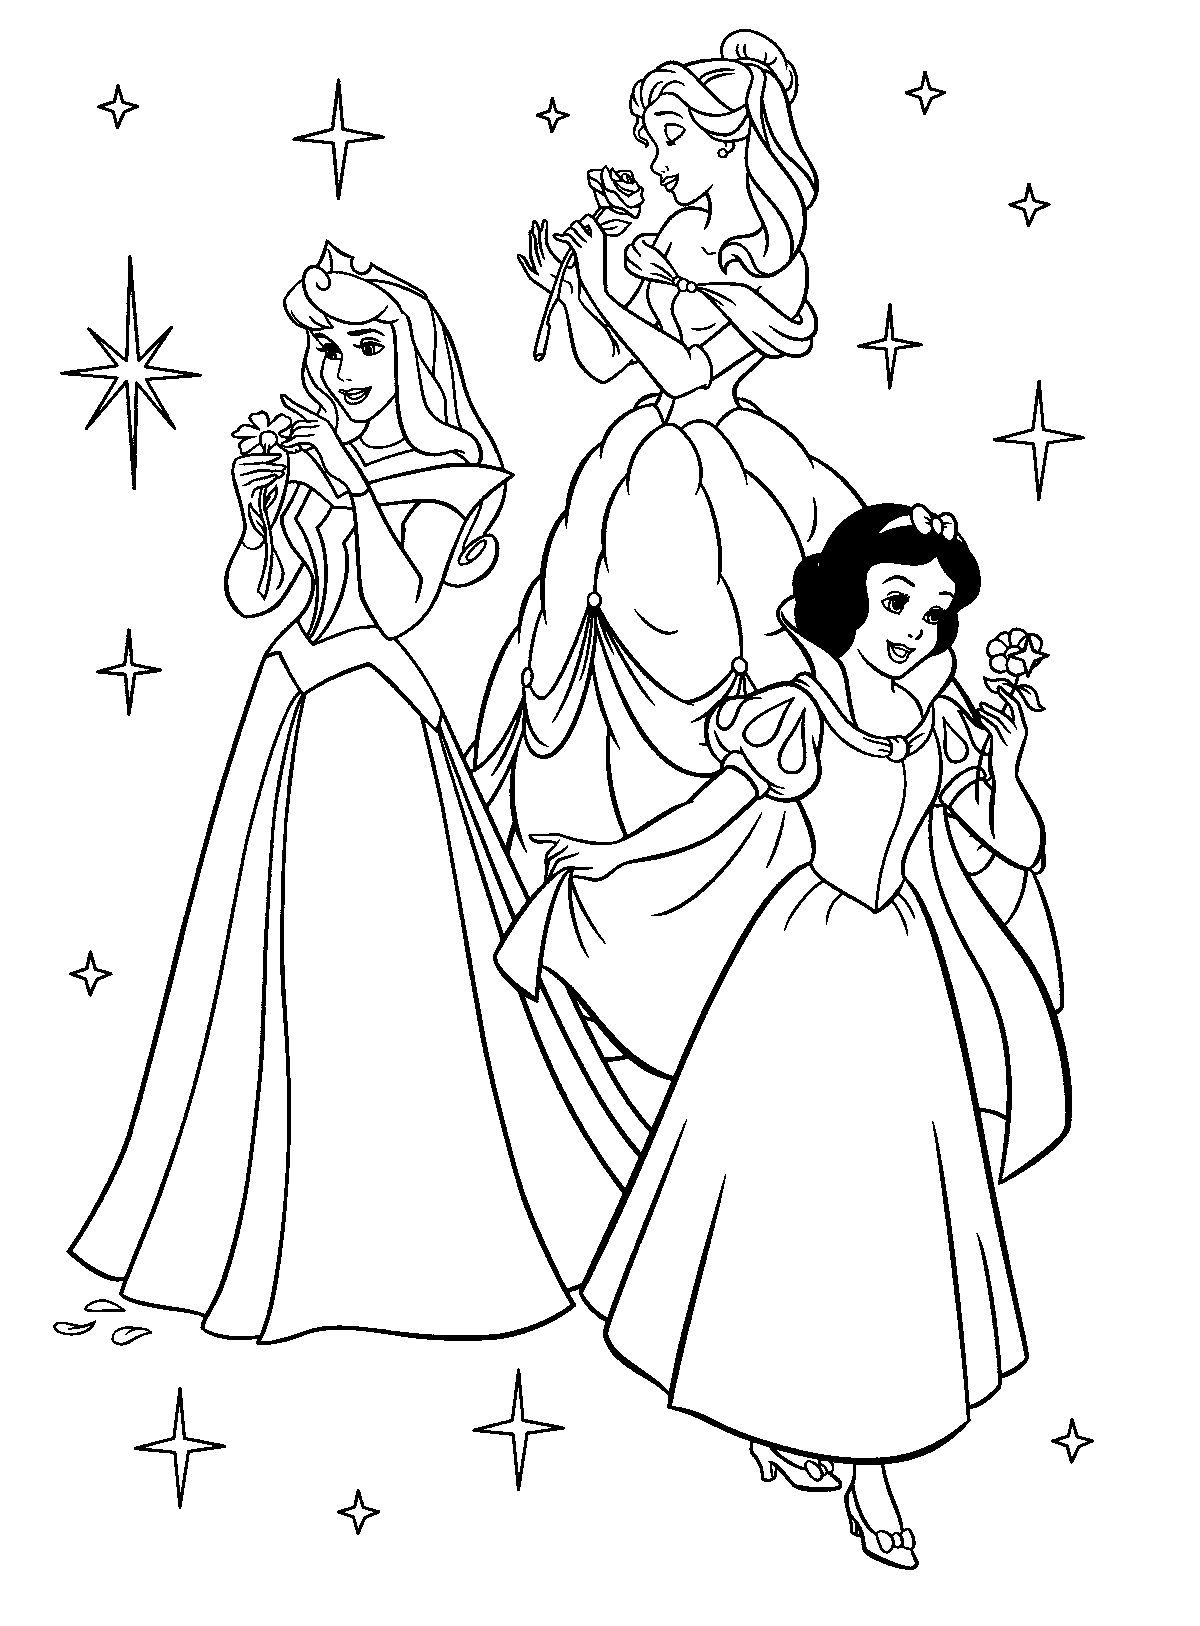 Printable Frozen Coloring Pages Ideas For Kids Activities Free Coloring Sheets Disney Princess Coloring Pages Disney Princess Colors Cartoon Coloring Pages